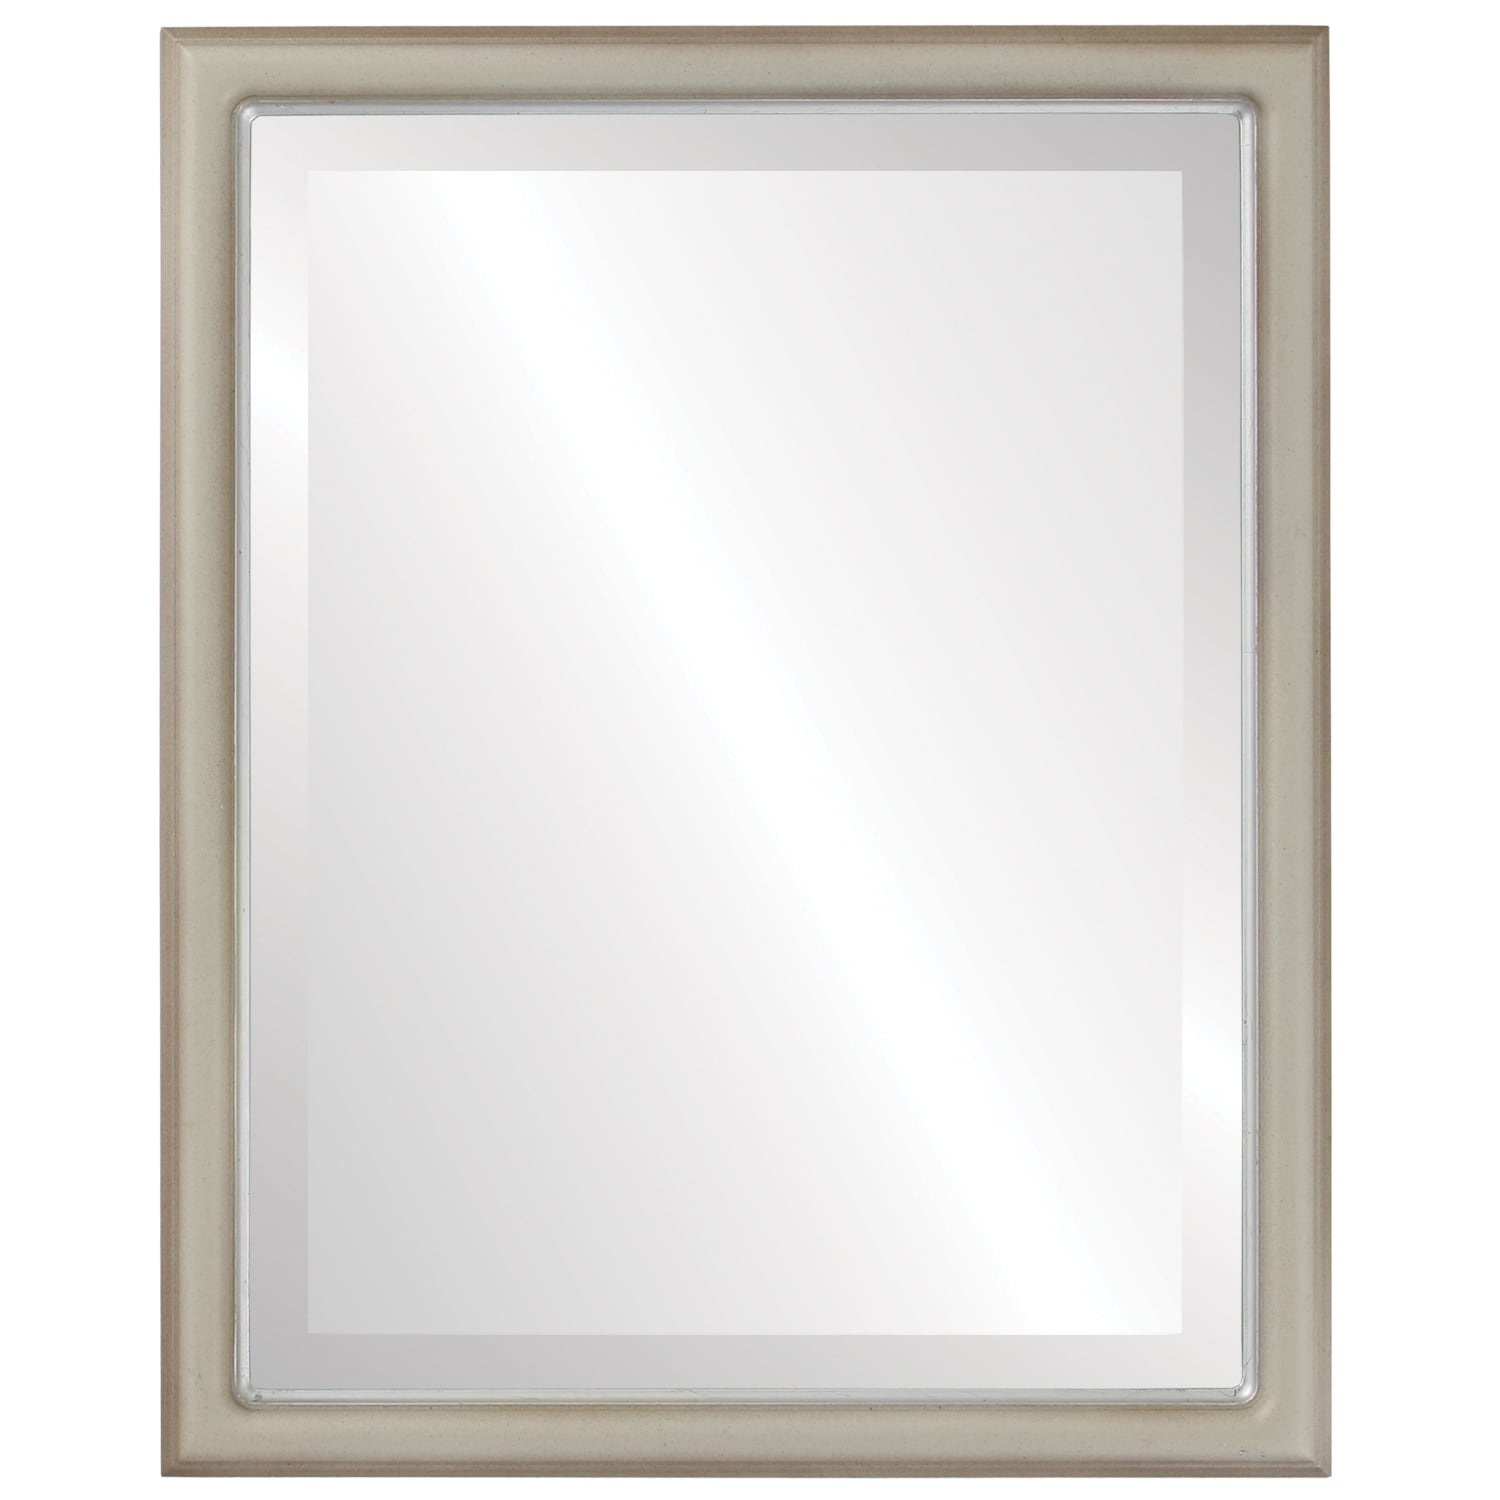 Hamilton Framed Rectangle Mirror in Taupe with Silver Lip (21x25)